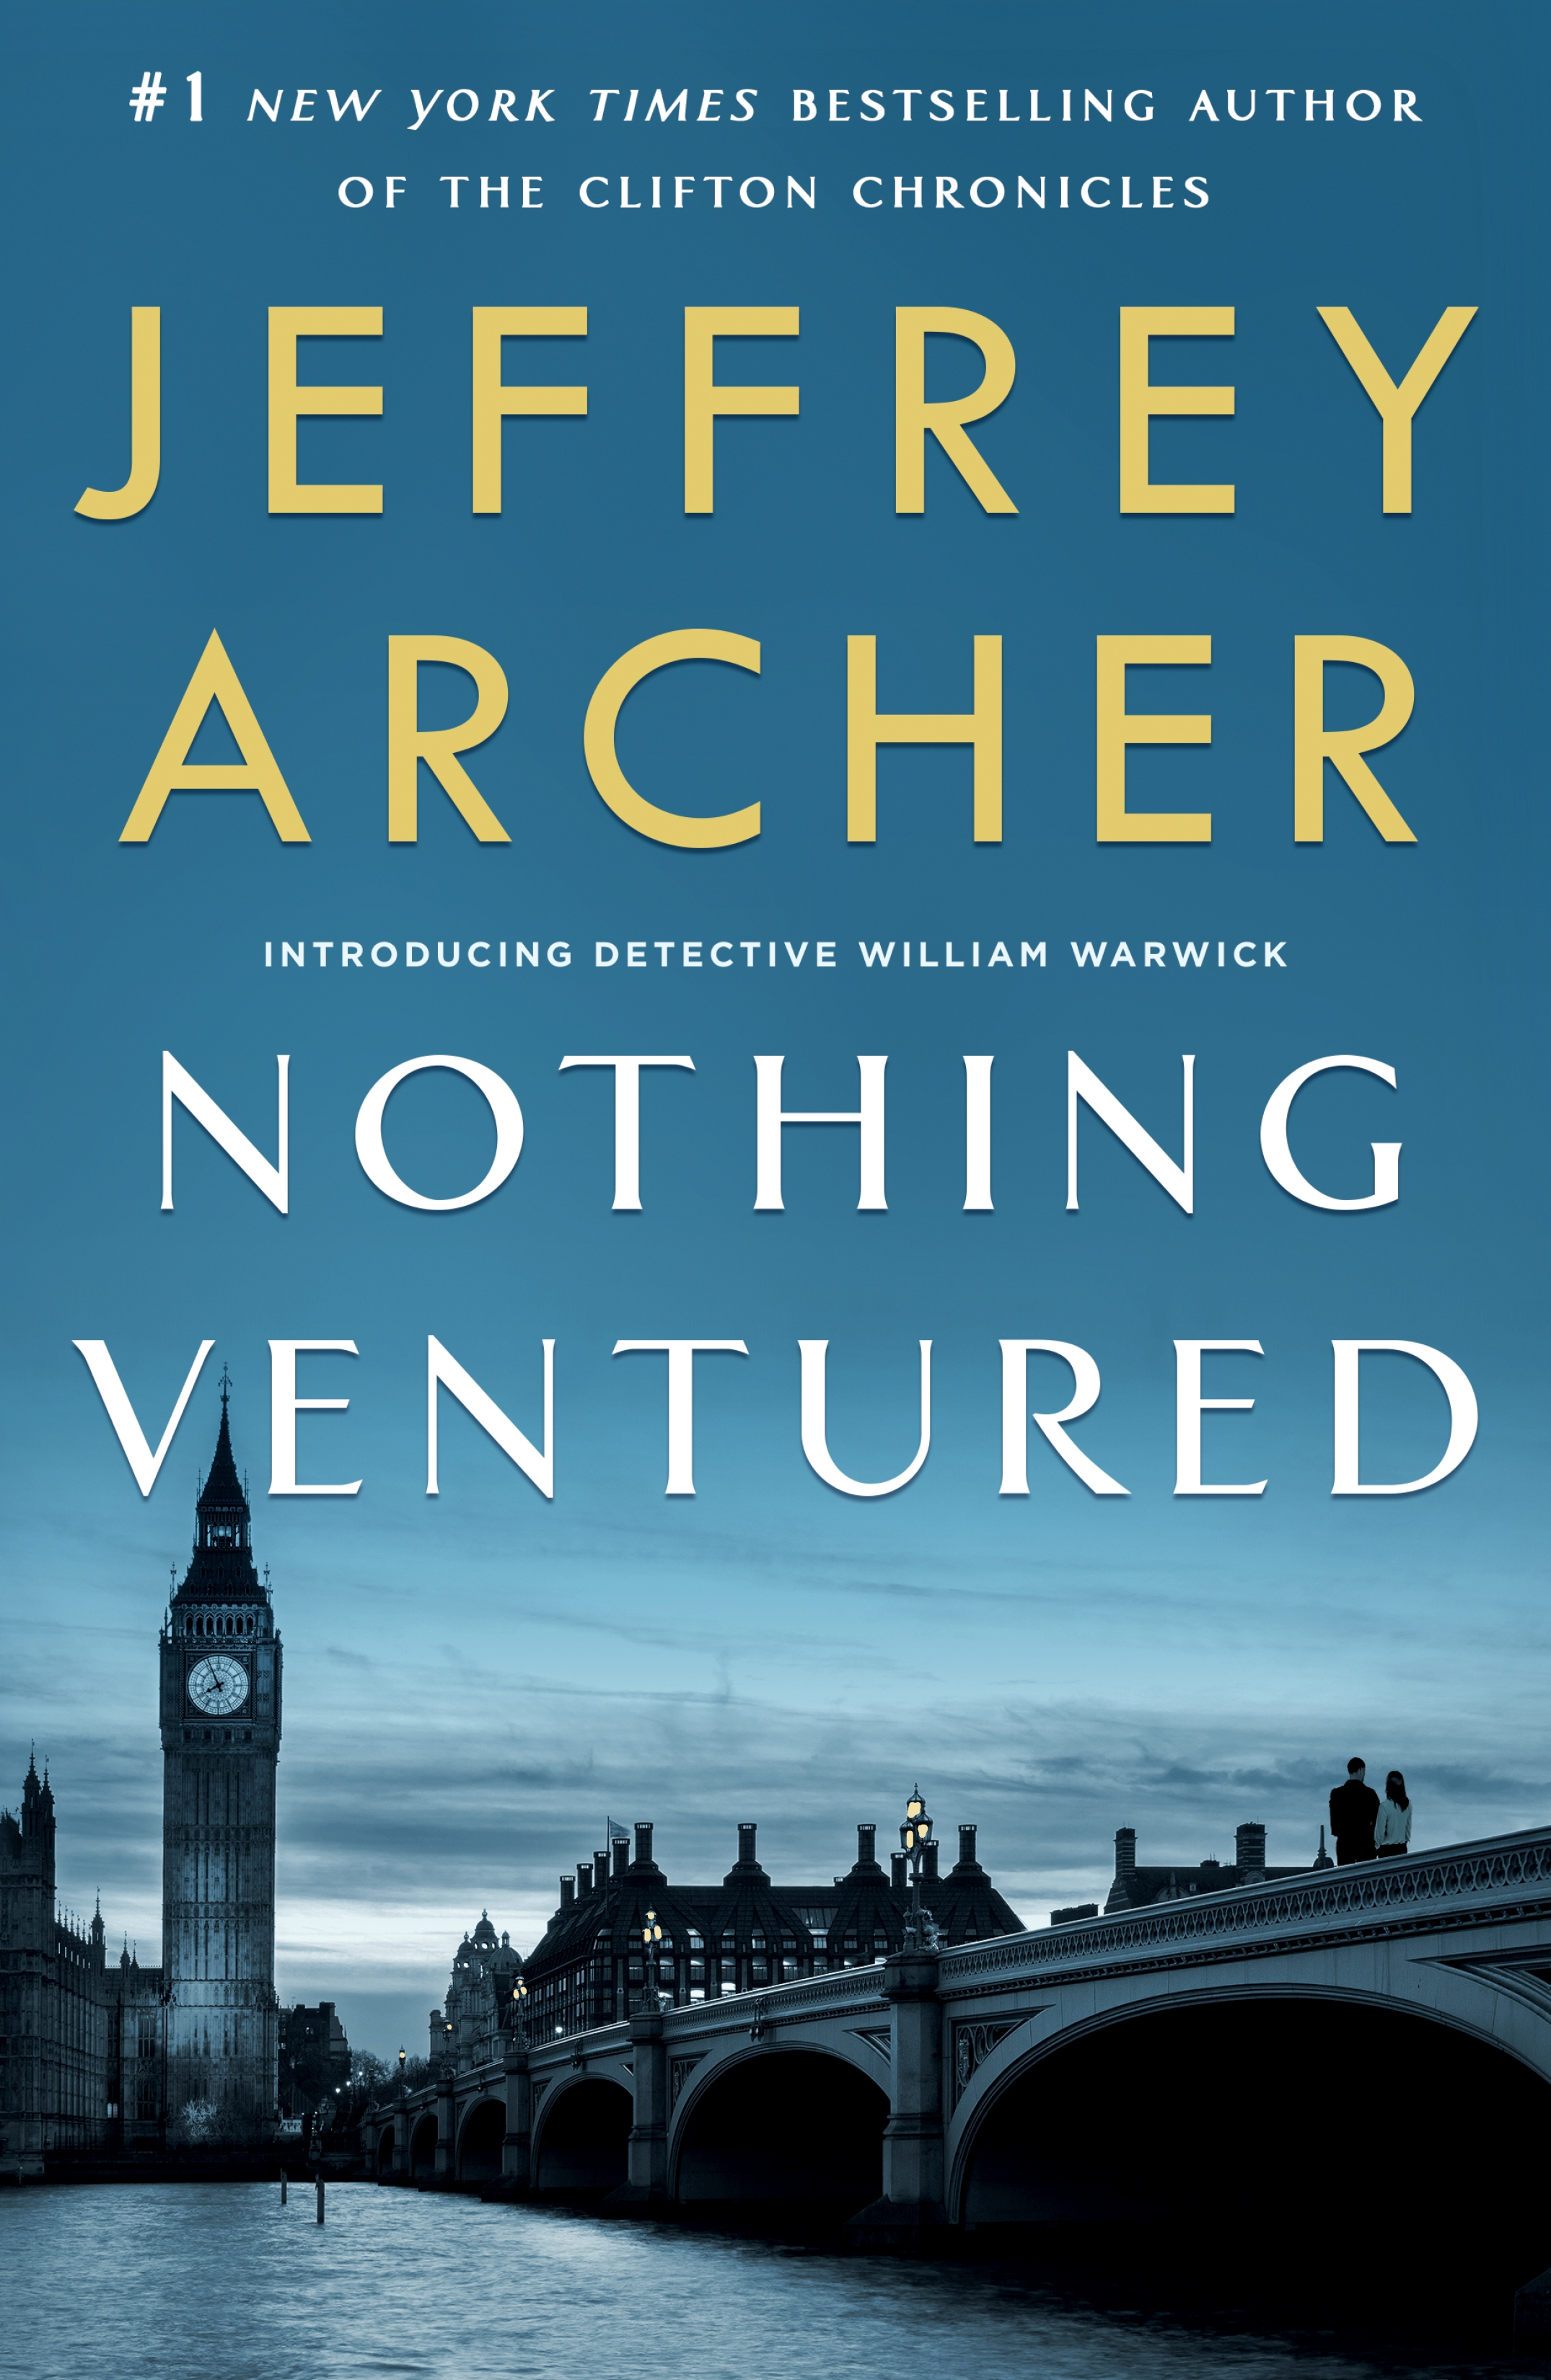 Nothing ventured cover image